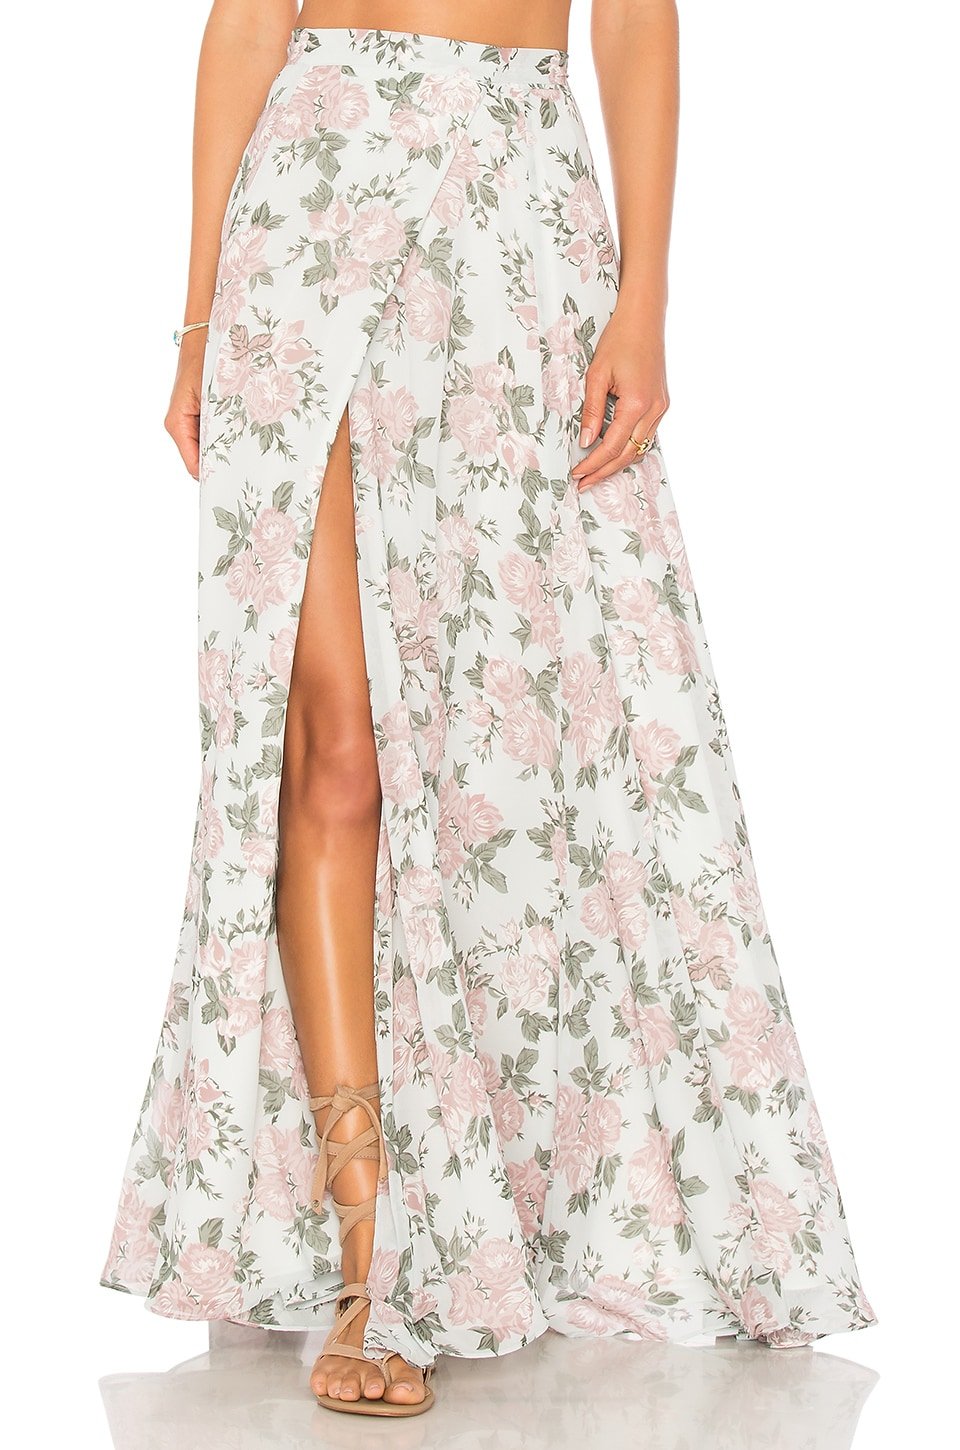 Lovers + Friends x REVOLVE Hydra Skirt in Sea Foam Flore